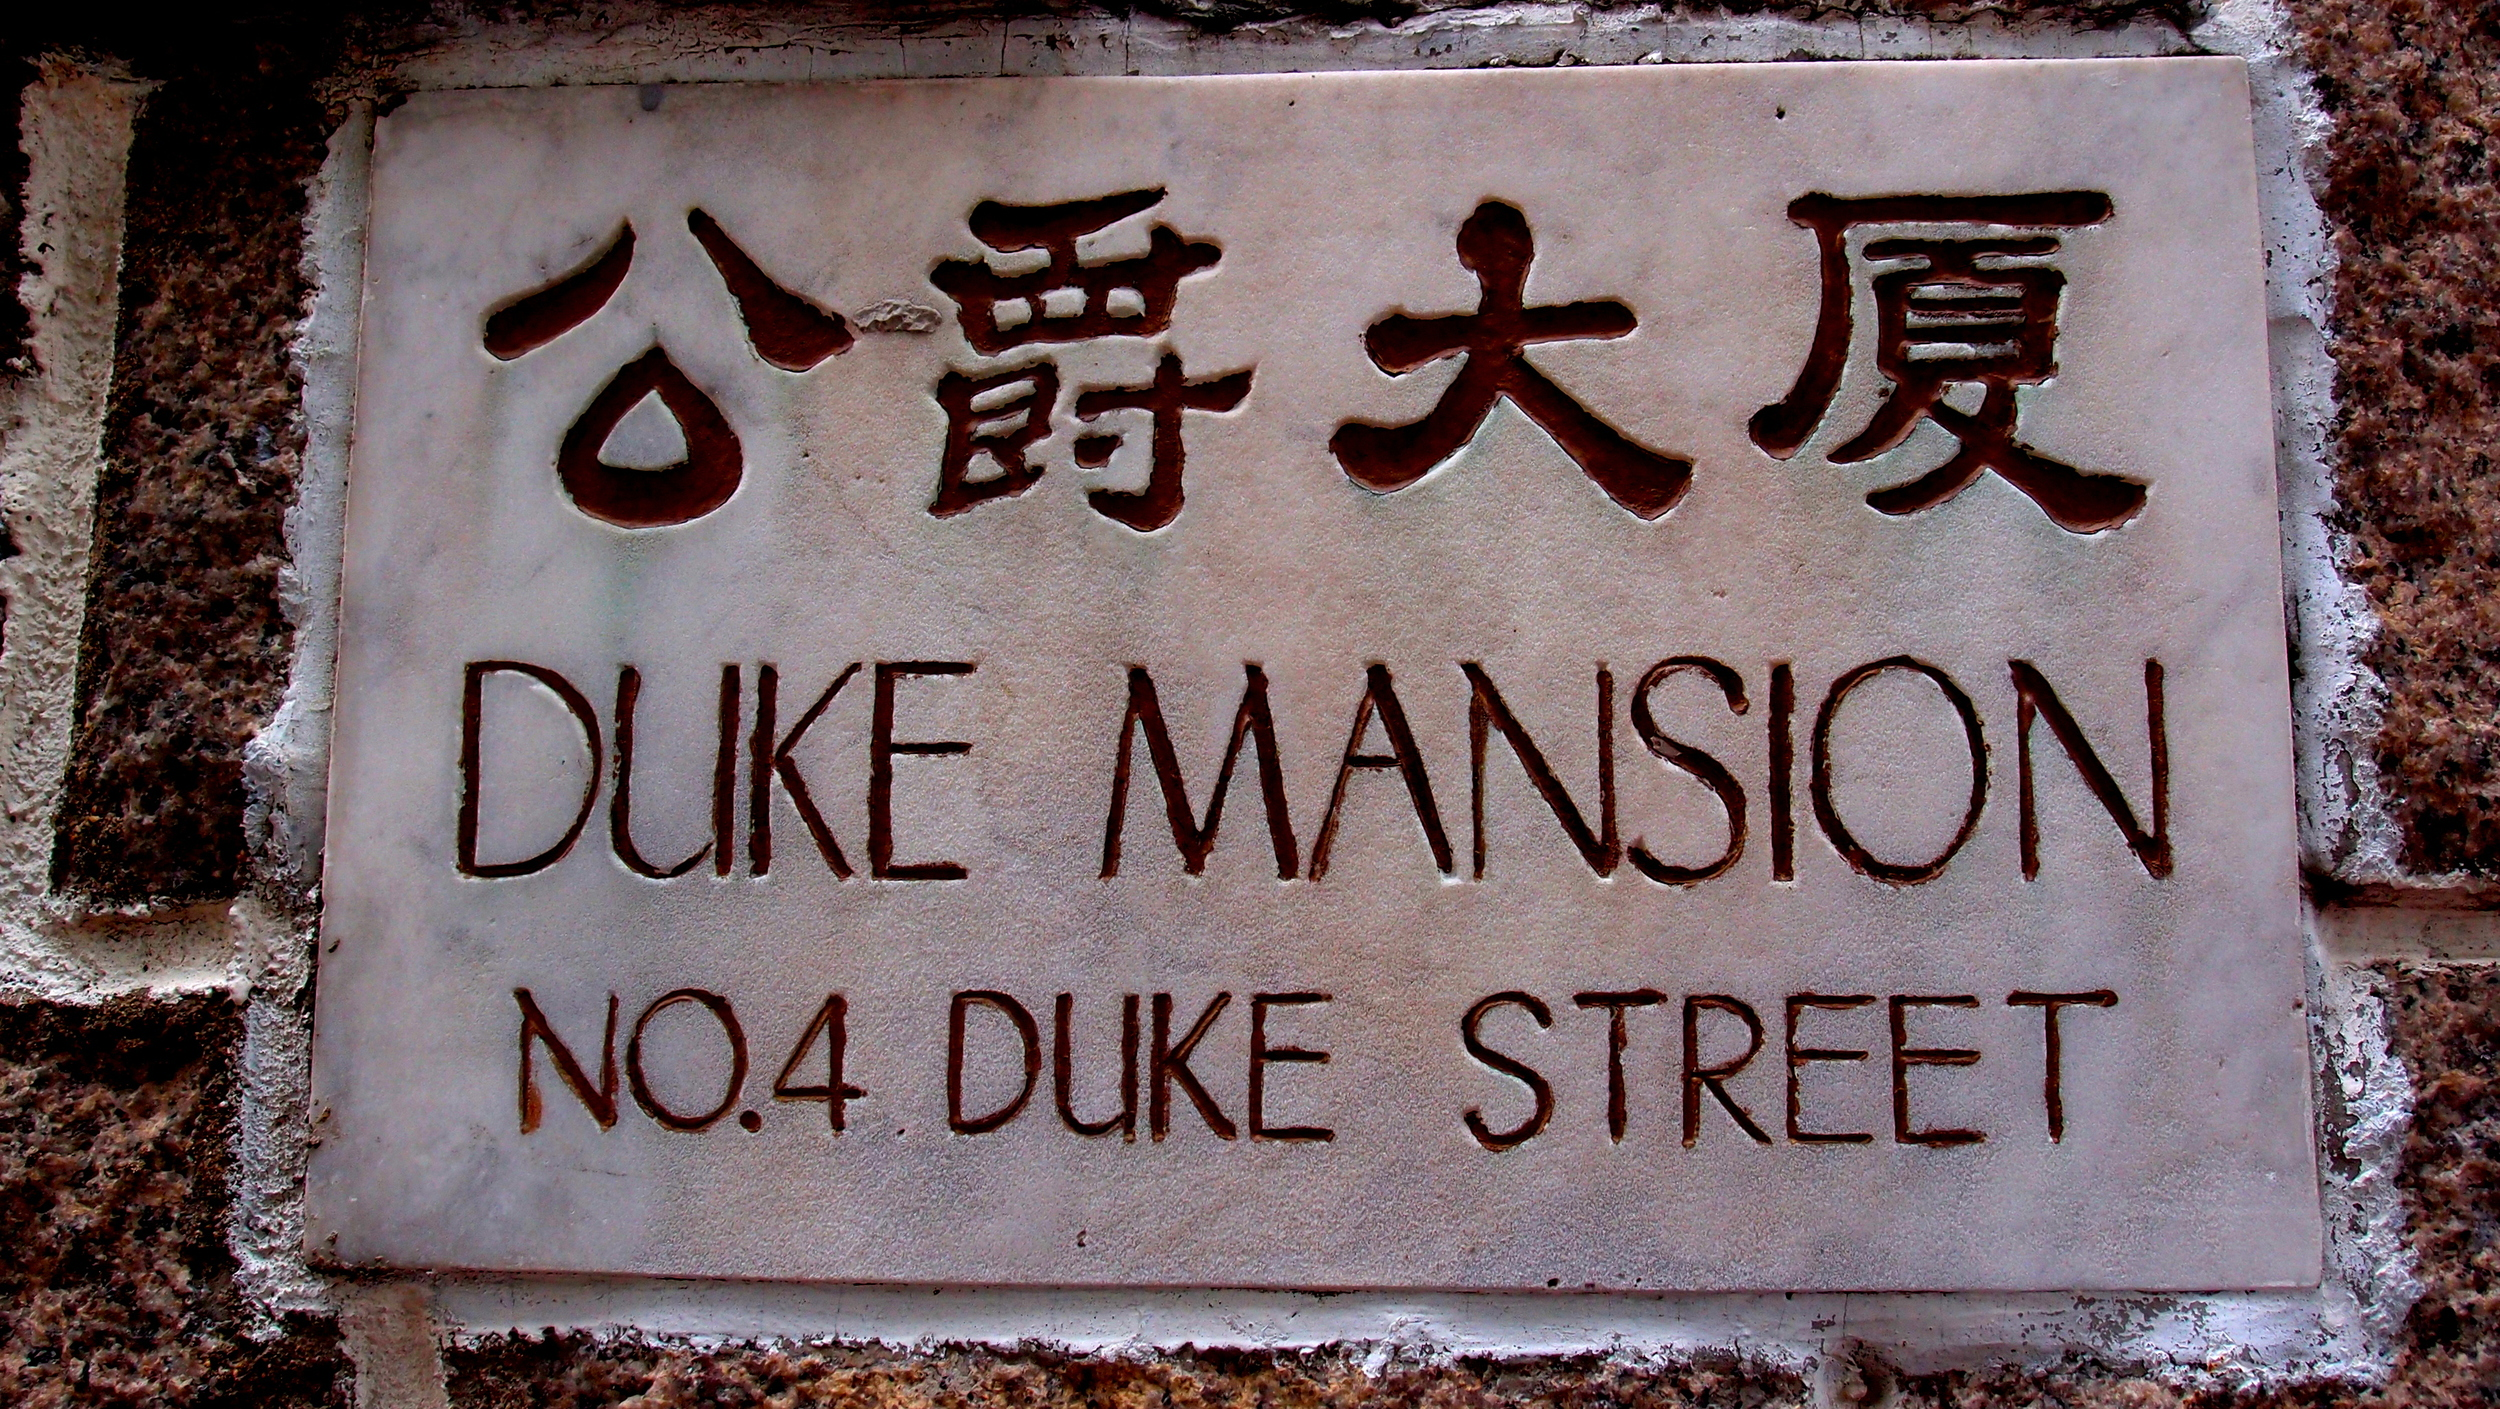 Duke Mansion near the Yuen Po Bird Garden